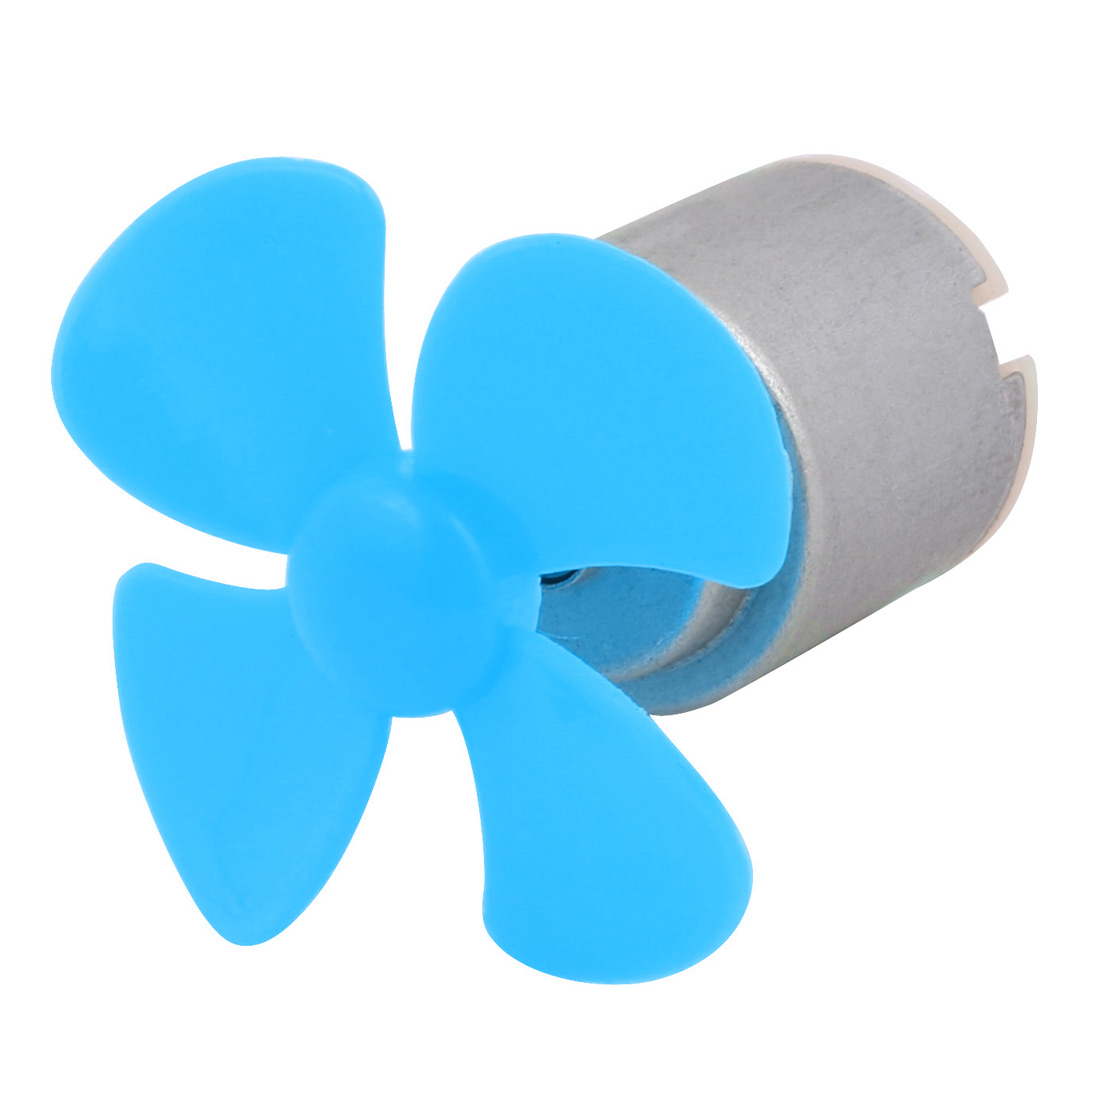 DC 1.5V 0.13A 3800RPM Strong Force Motor 4 Vanes 40mm Blue Propeller for RC Aircraft